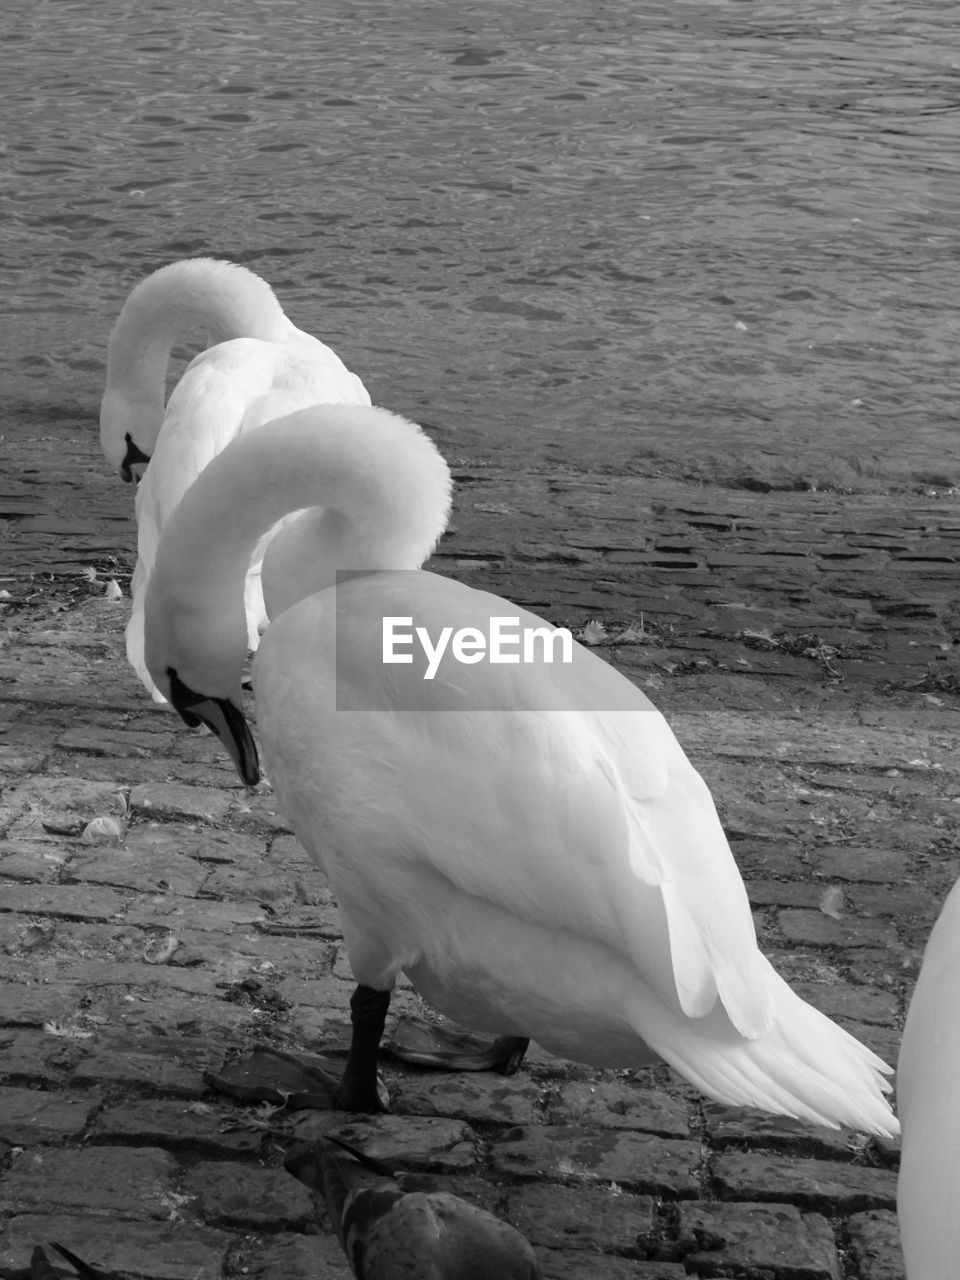 bird, animals in the wild, animal themes, white color, one animal, animal wildlife, swan, lake, water, beak, nature, no people, day, outdoors, close-up, beauty in nature